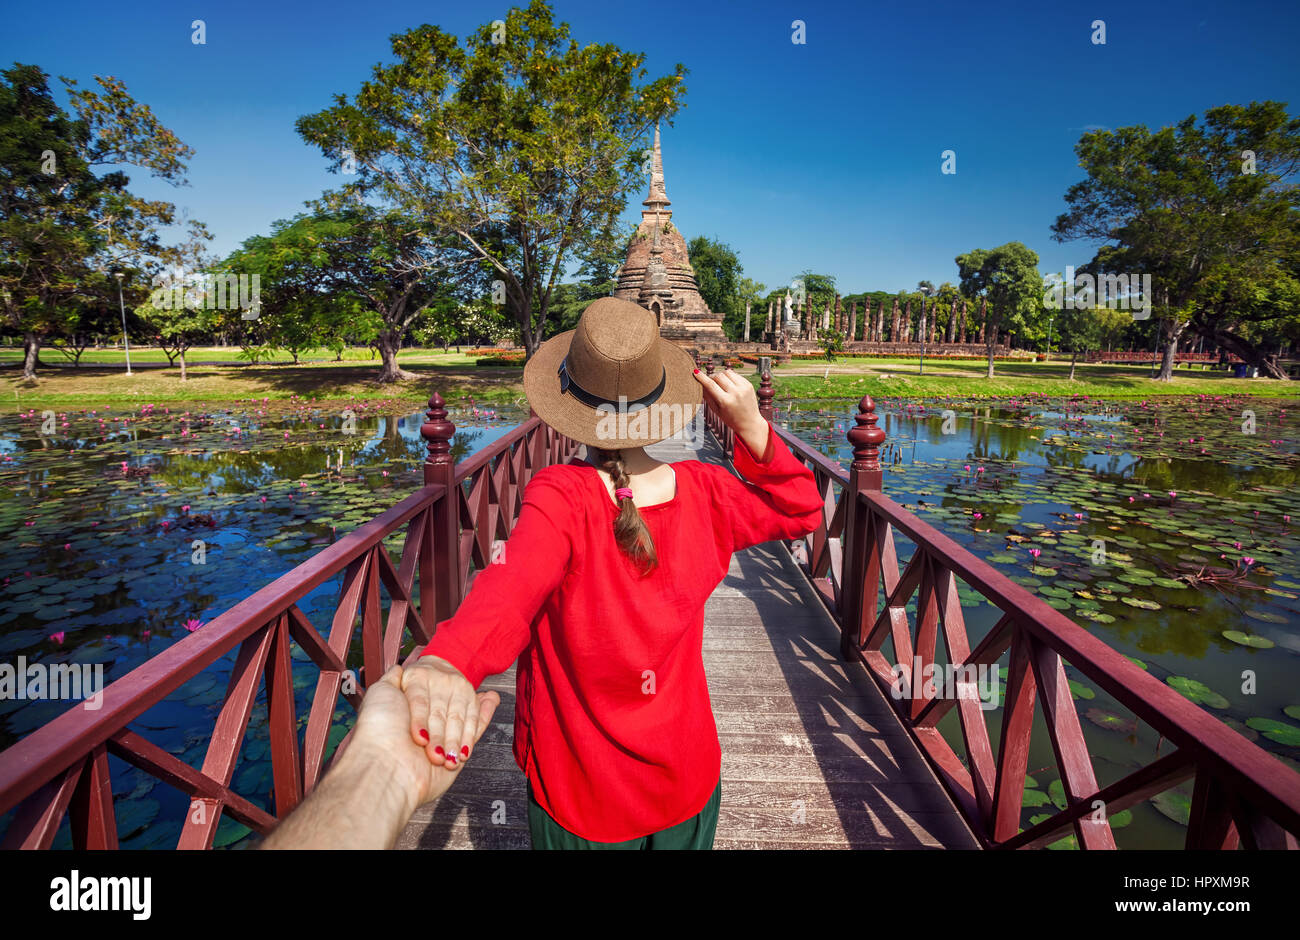 Tourist Woman in red shirt holding her husband by hand and going to ancient stupa in Sukhohai Historical Park, Thailand - Stock Image